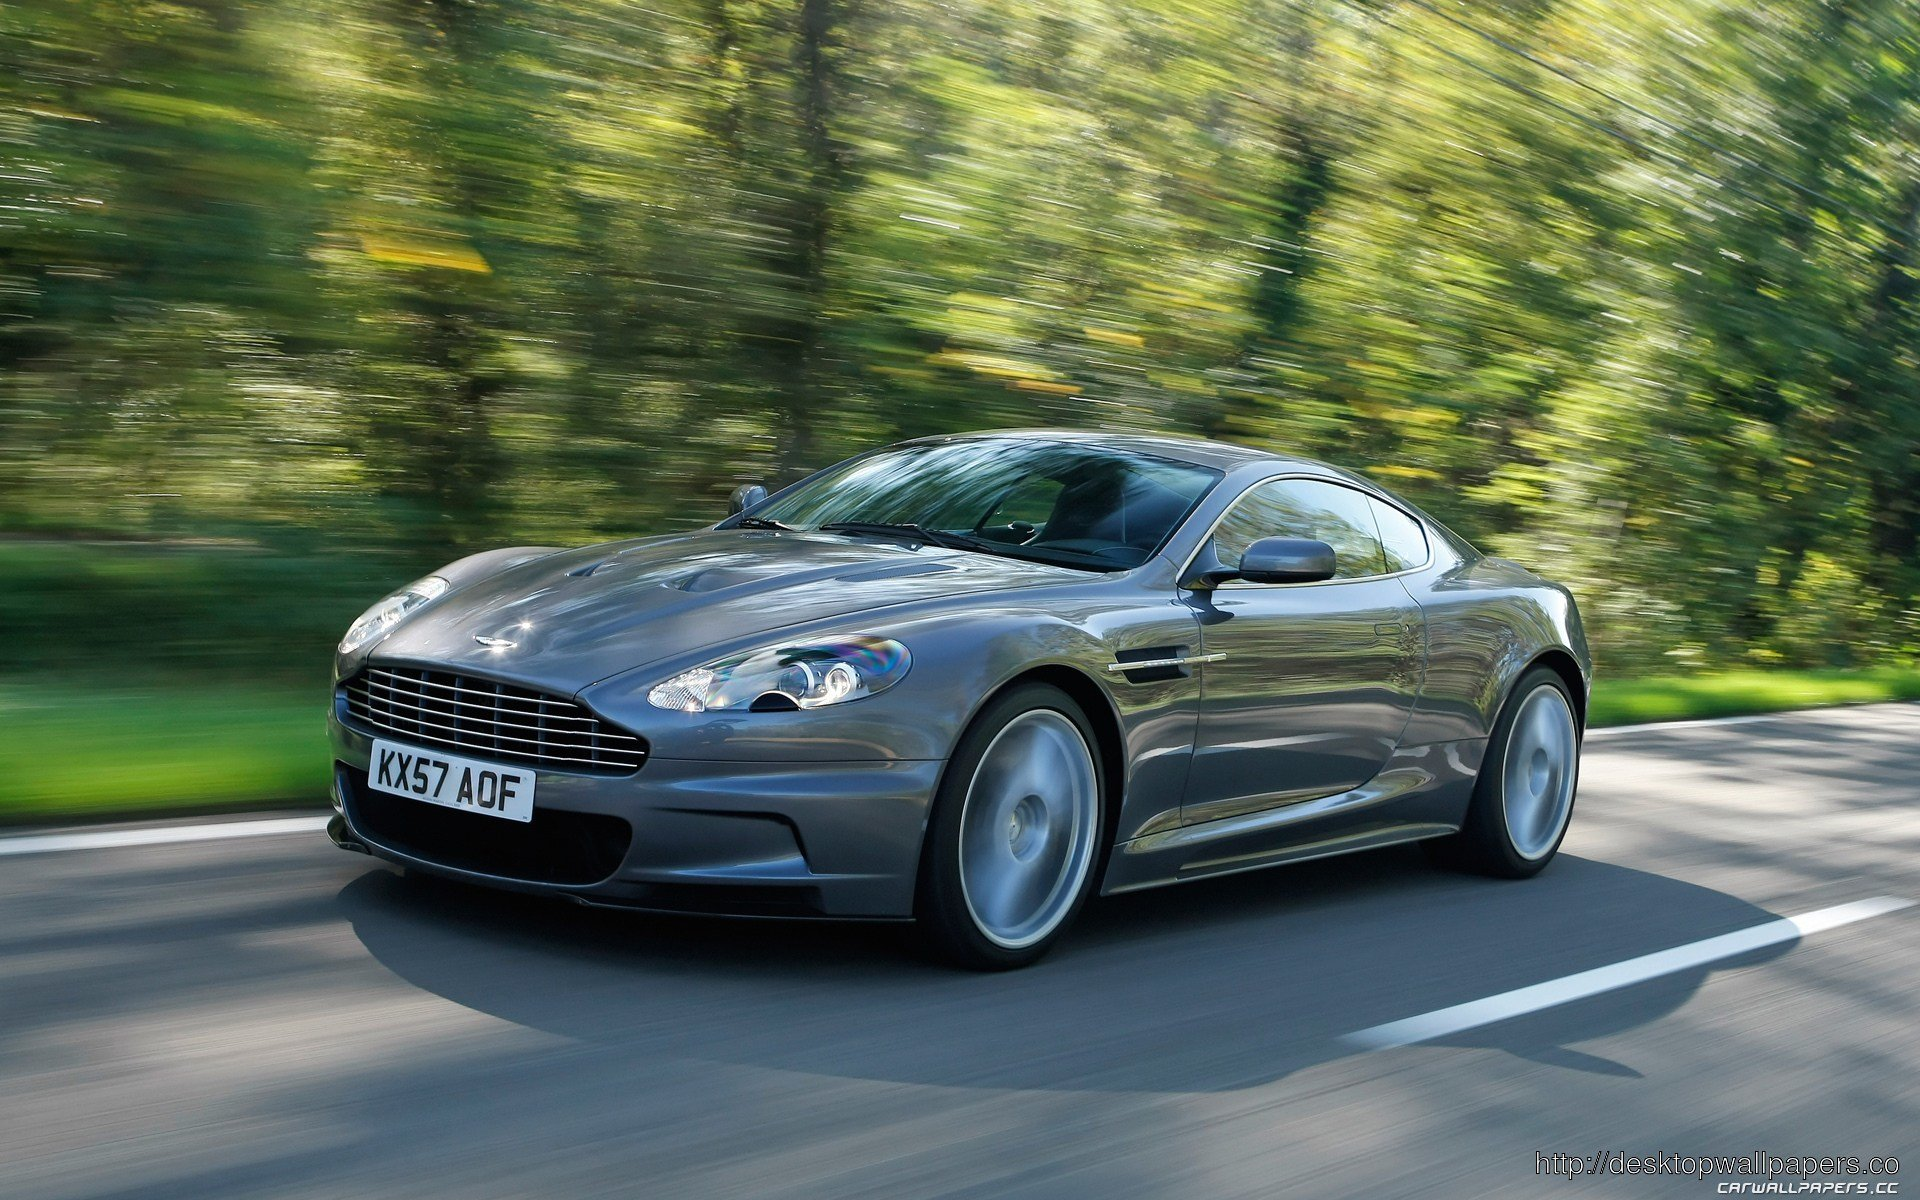 Latest Aston Martin Dbs Car Desktop Wallpapers Free Free Download